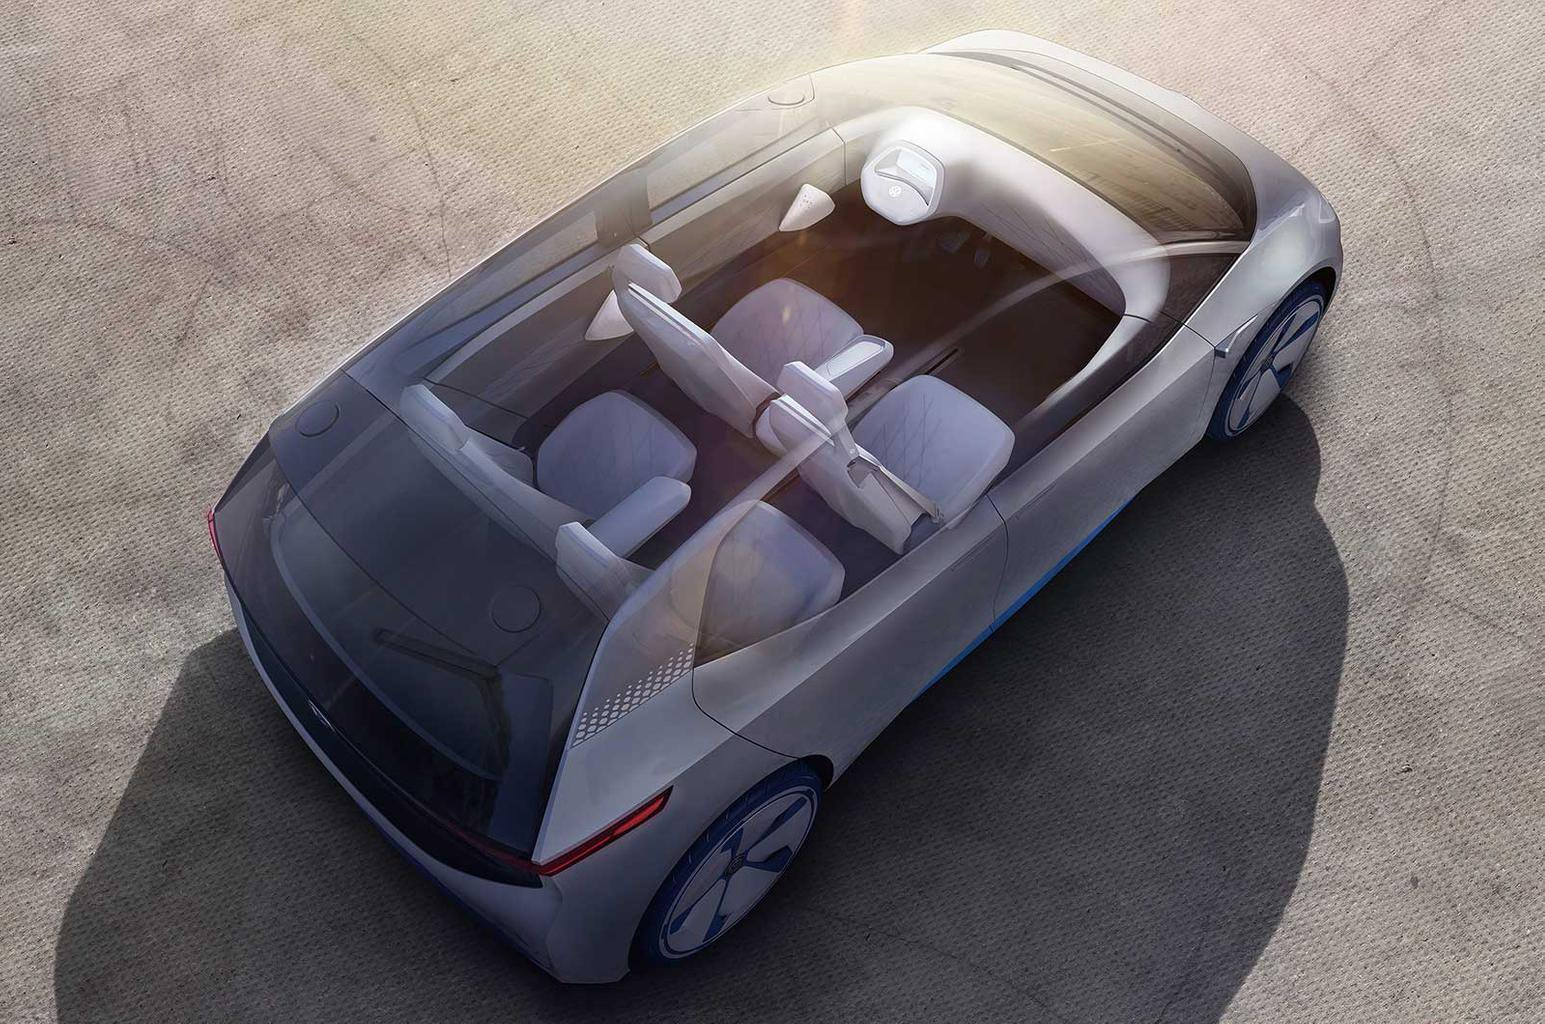 VW ID concept previews new electric car